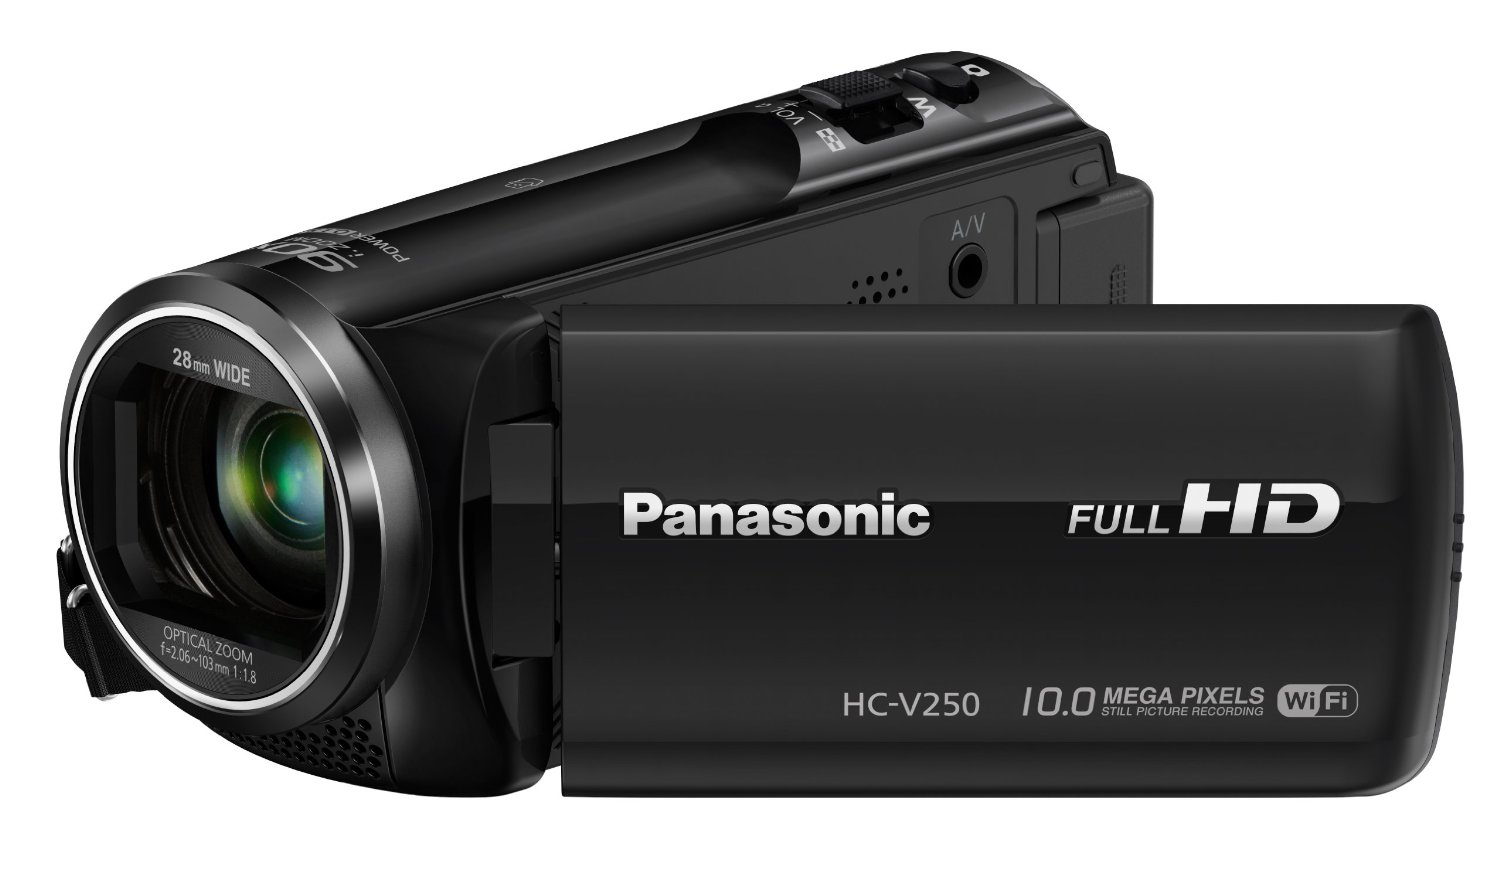 Panasonic Full HD camera